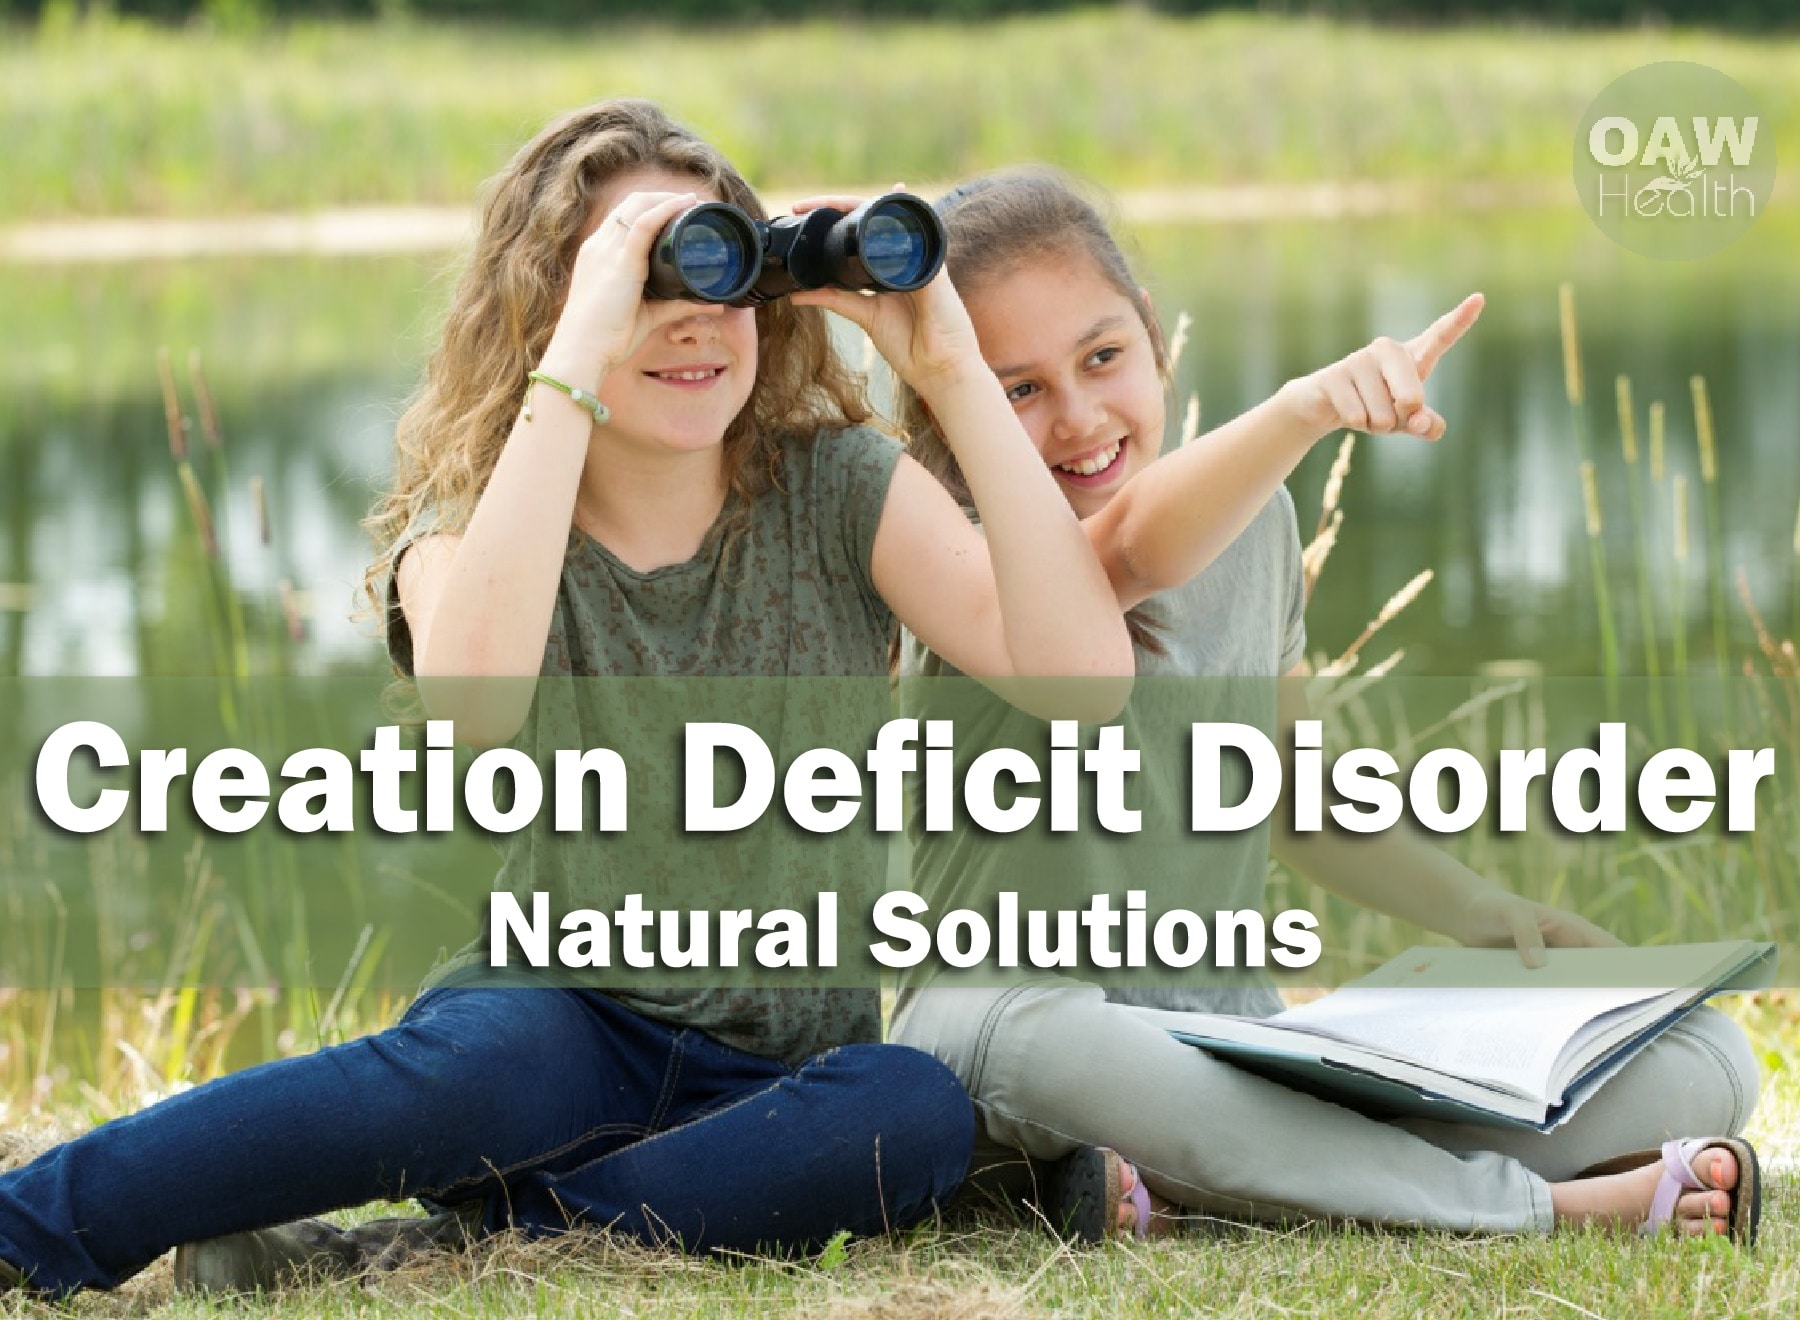 Creation Deficit Disorder Natural Solutions